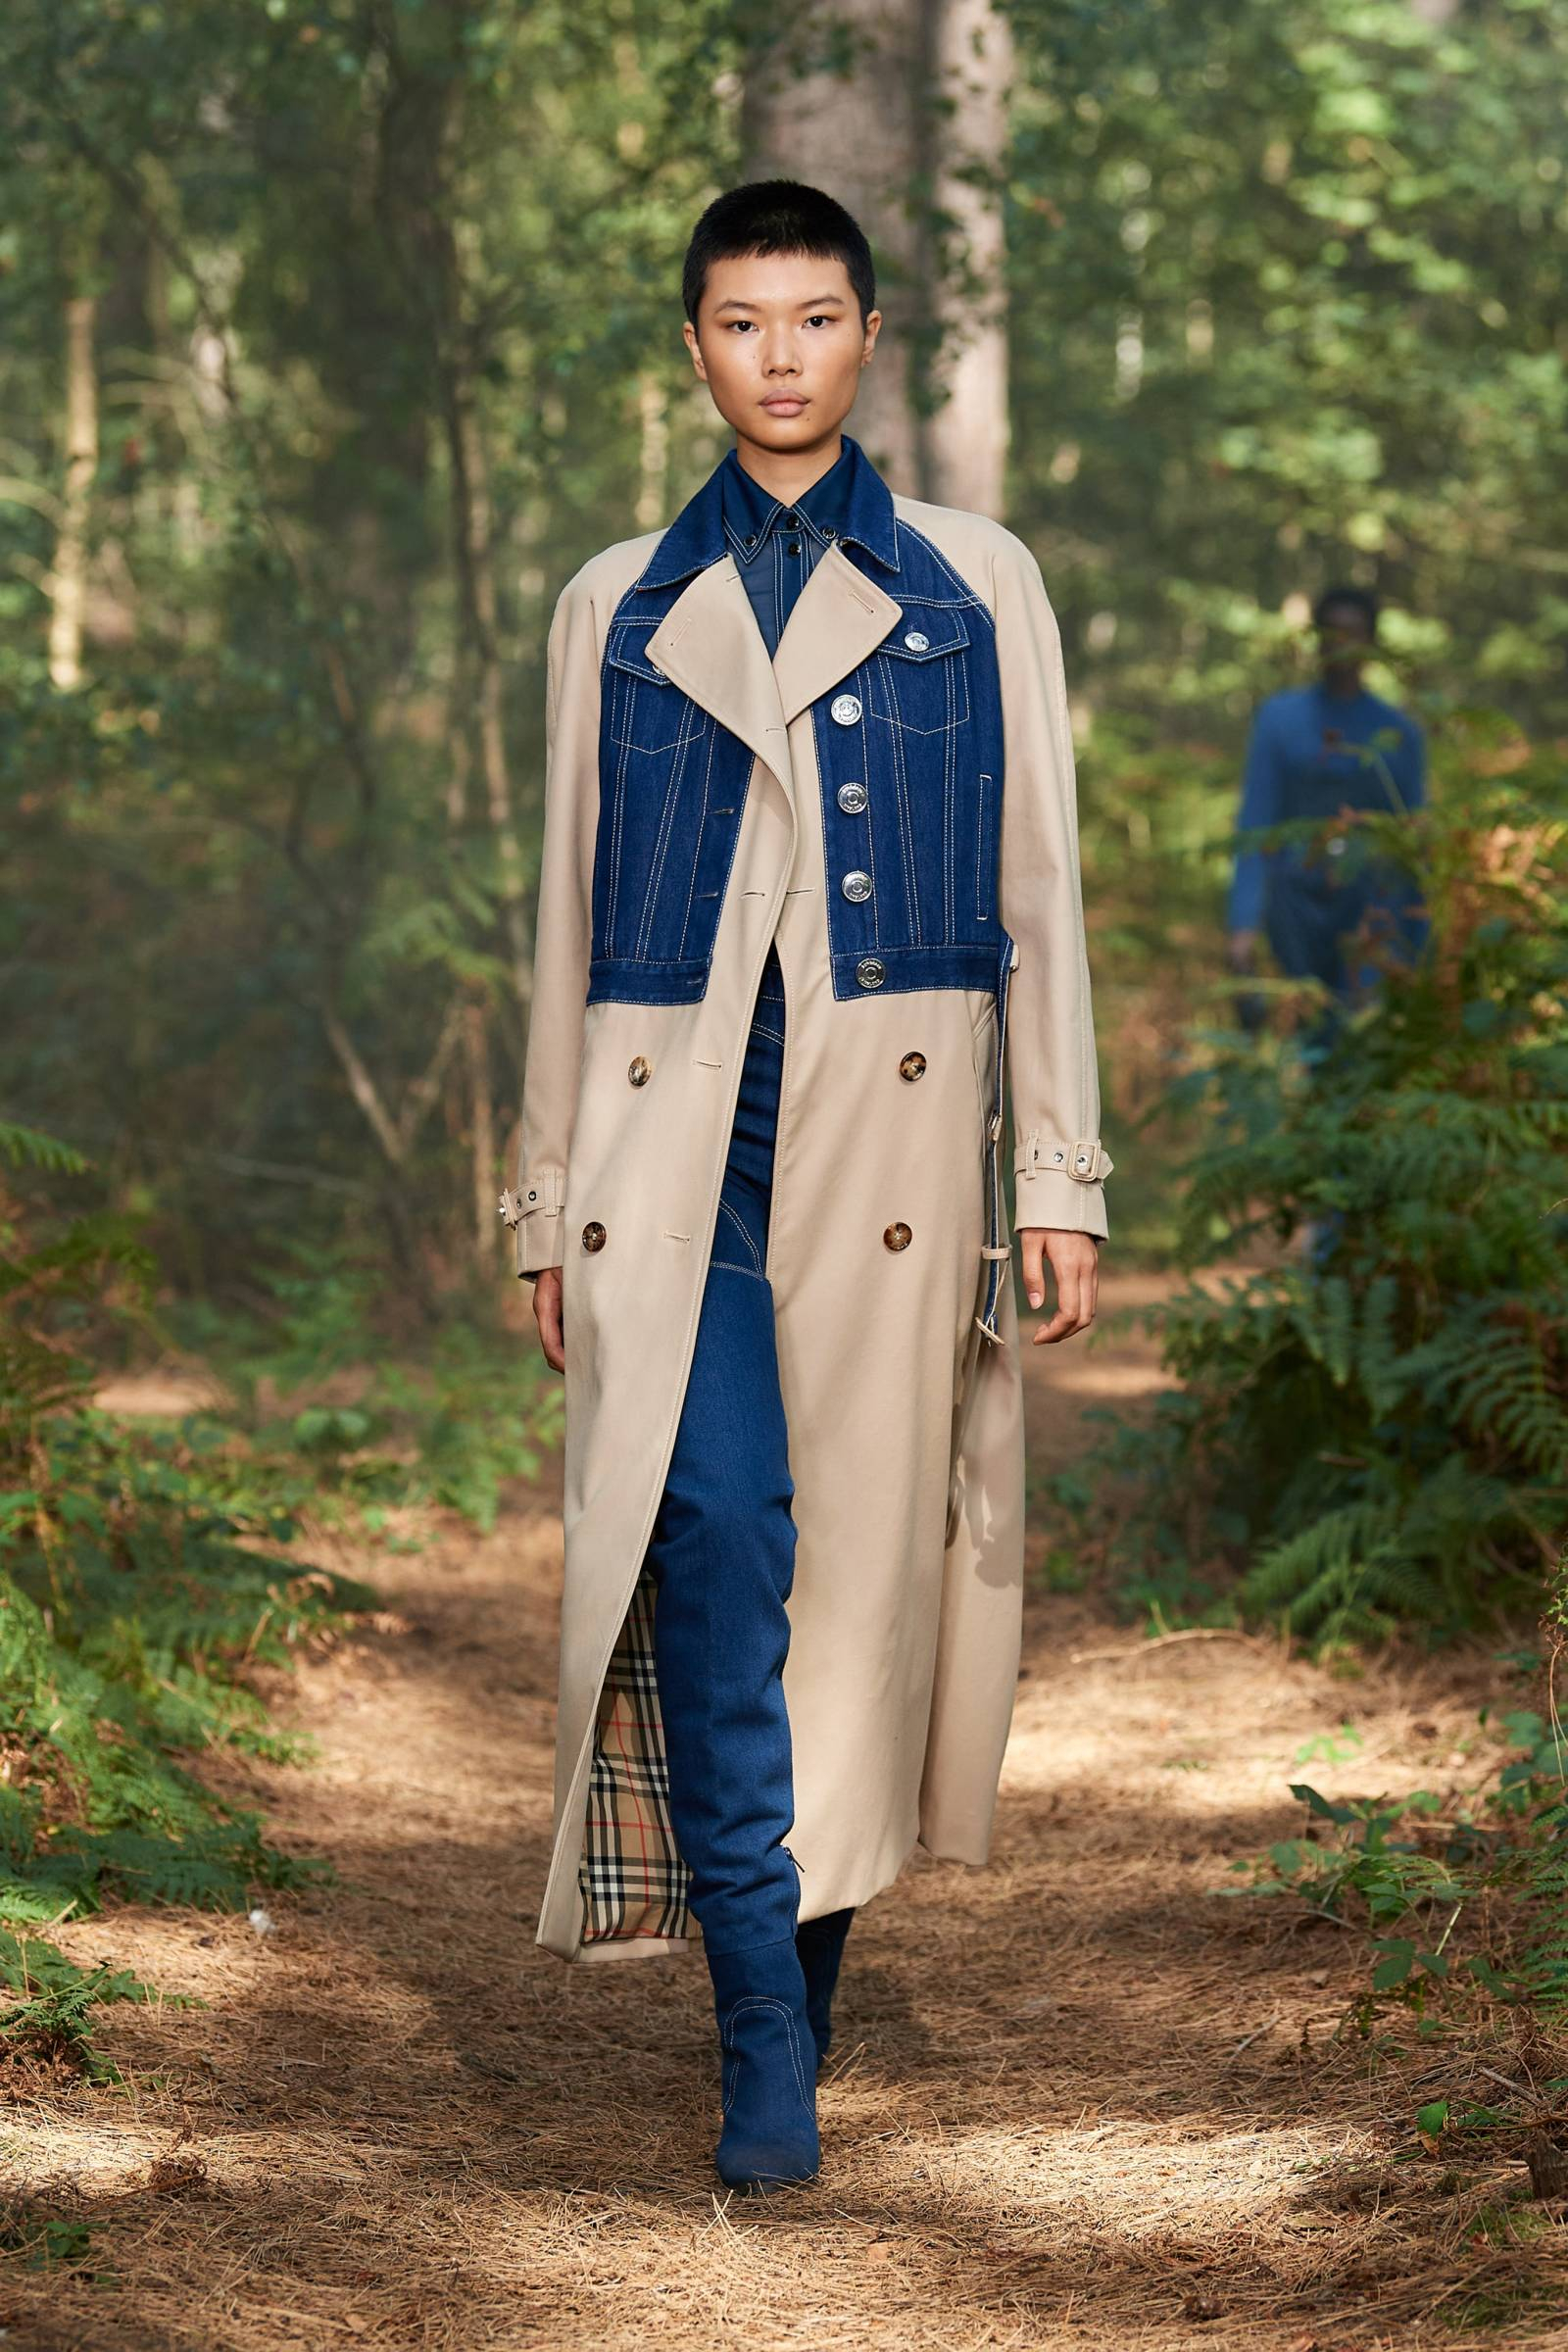 London Fashion Week: 40 Best Outfits From Spring-Summer 2021